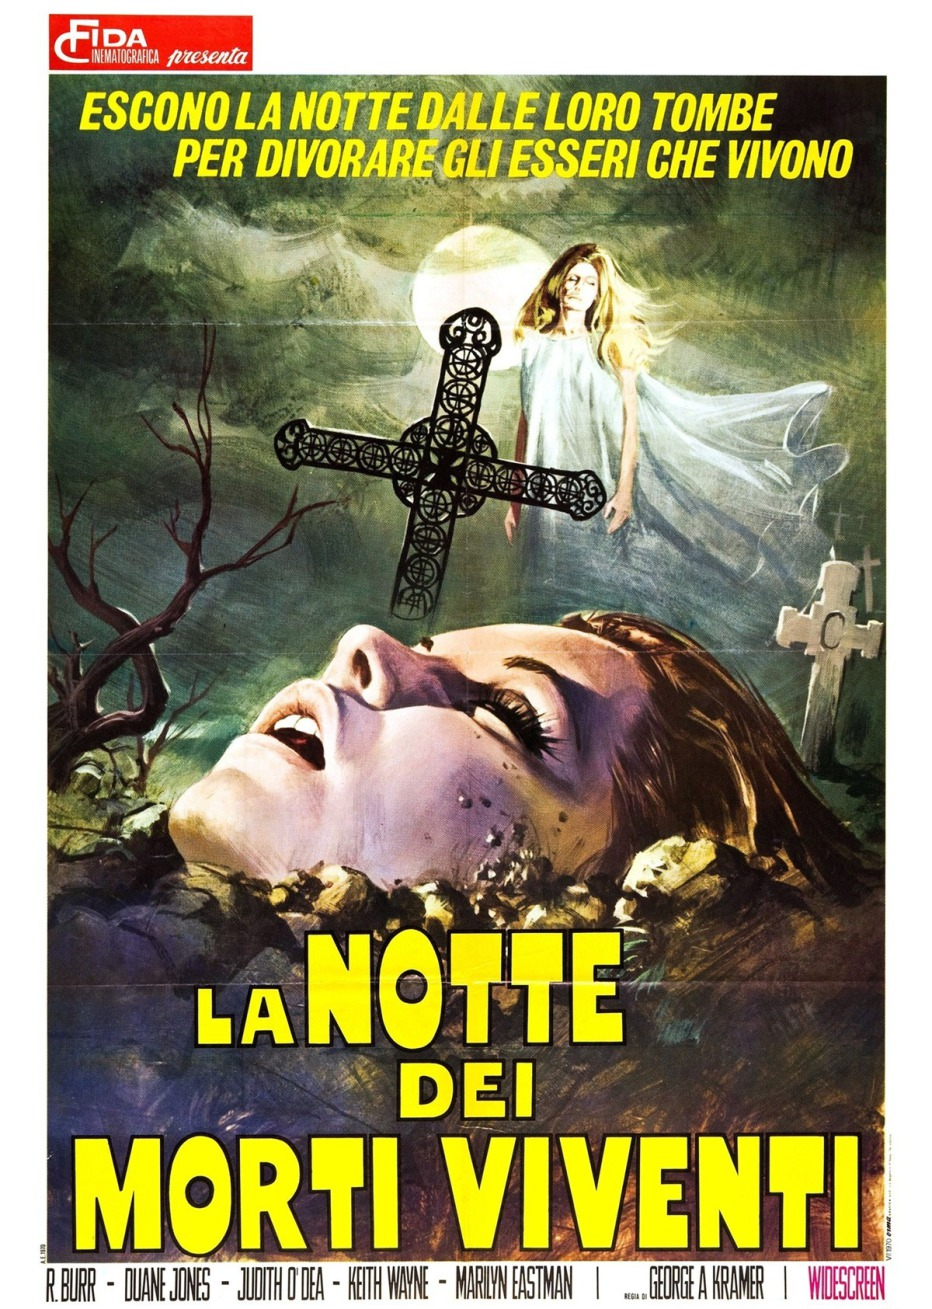 la-notte-dei-morti-viventi-night-of-living-dead-1968-george-a-romero-38.jpg